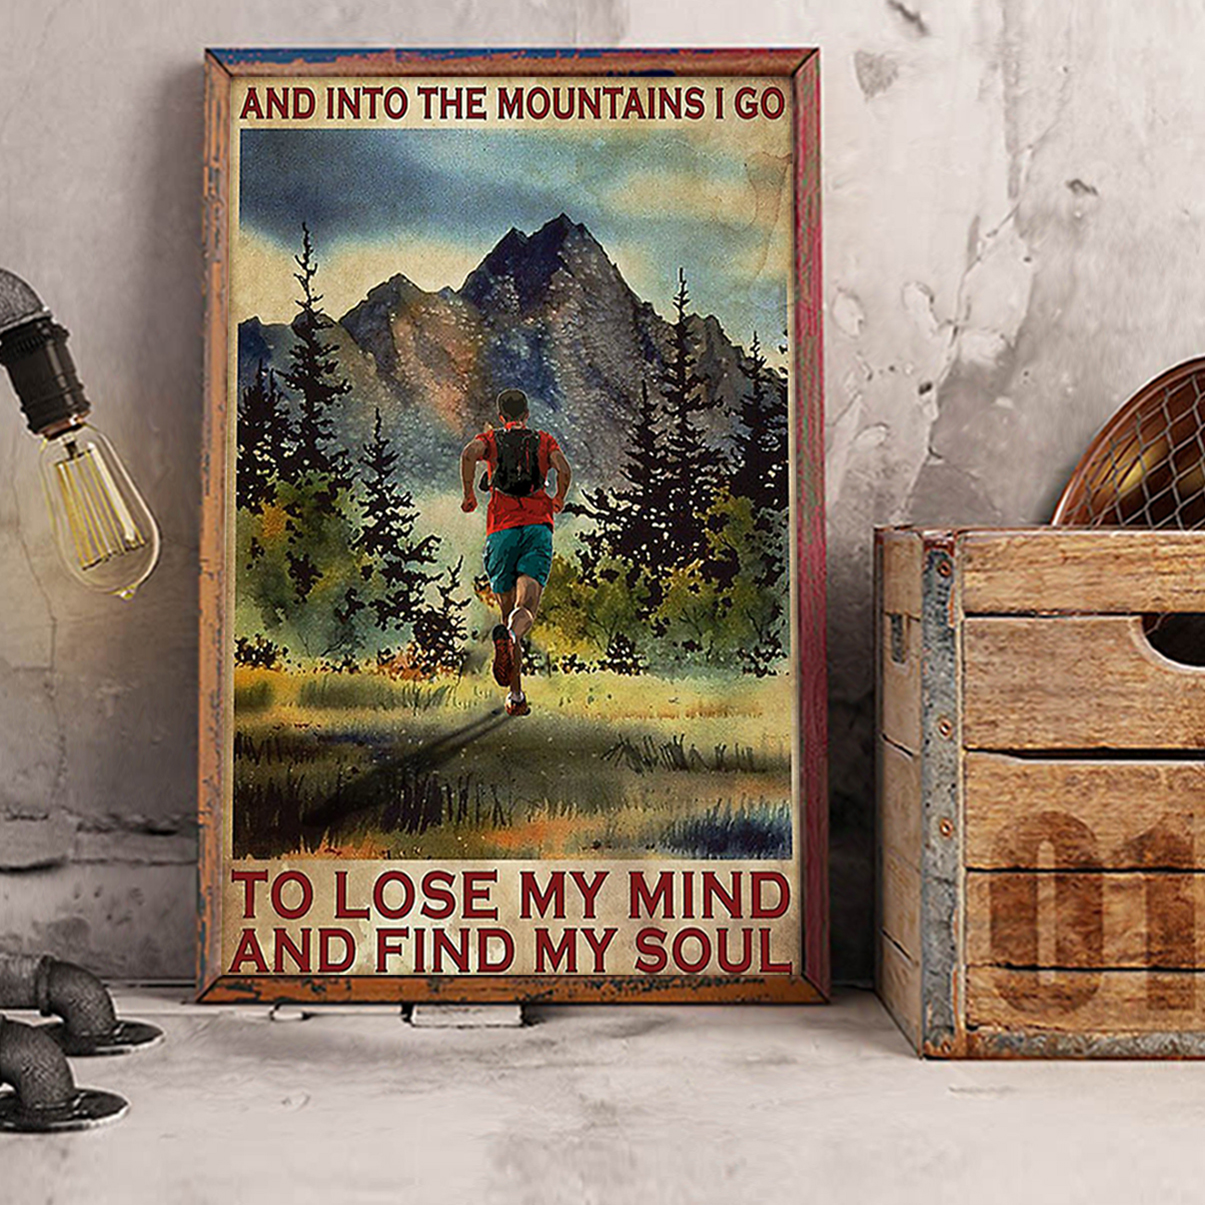 Running and into the mountains I go poster